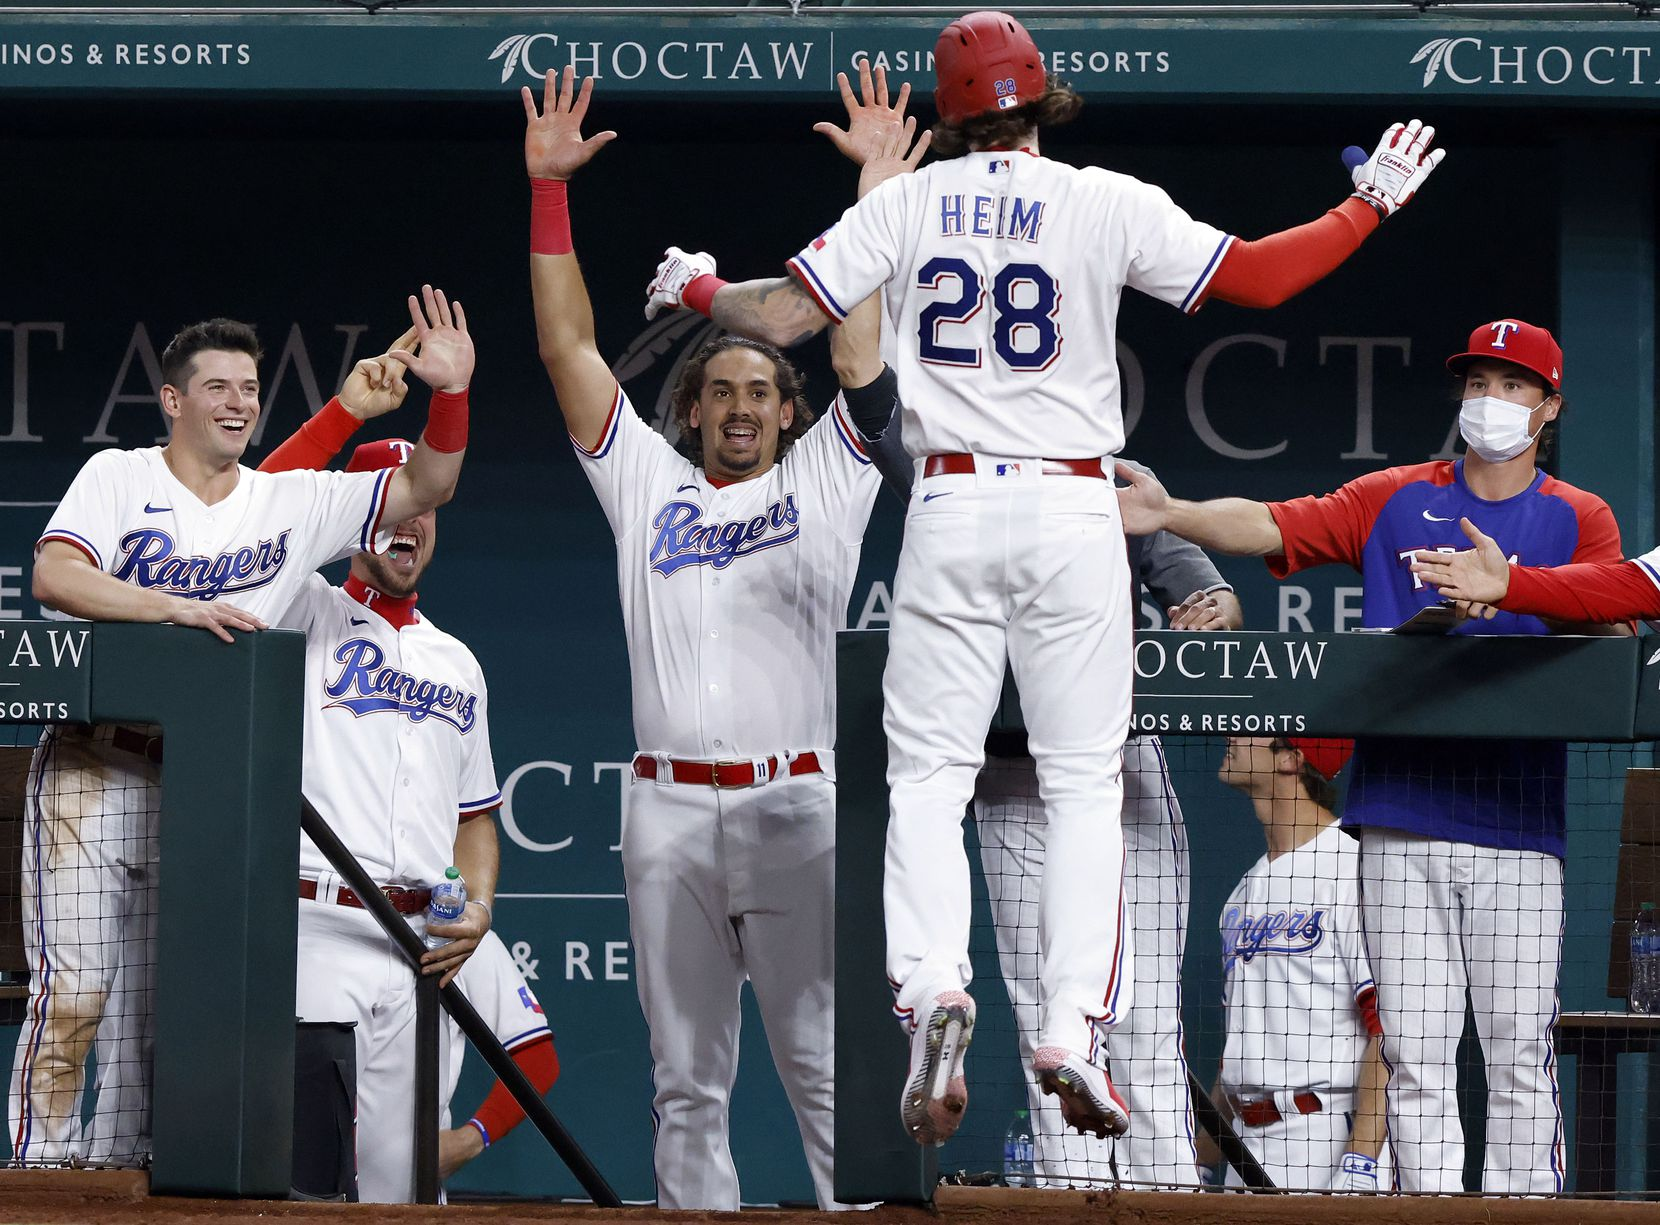 Texas Rangers Jonah Heim (28) is congratulated by teammates after hitting his first Major League home run during sixth inning against the Toronto Blue Jays at Globe Life Field in Arlington, Tuesday, April 7, 2021. (Tom Fox/The Dallas Morning News)